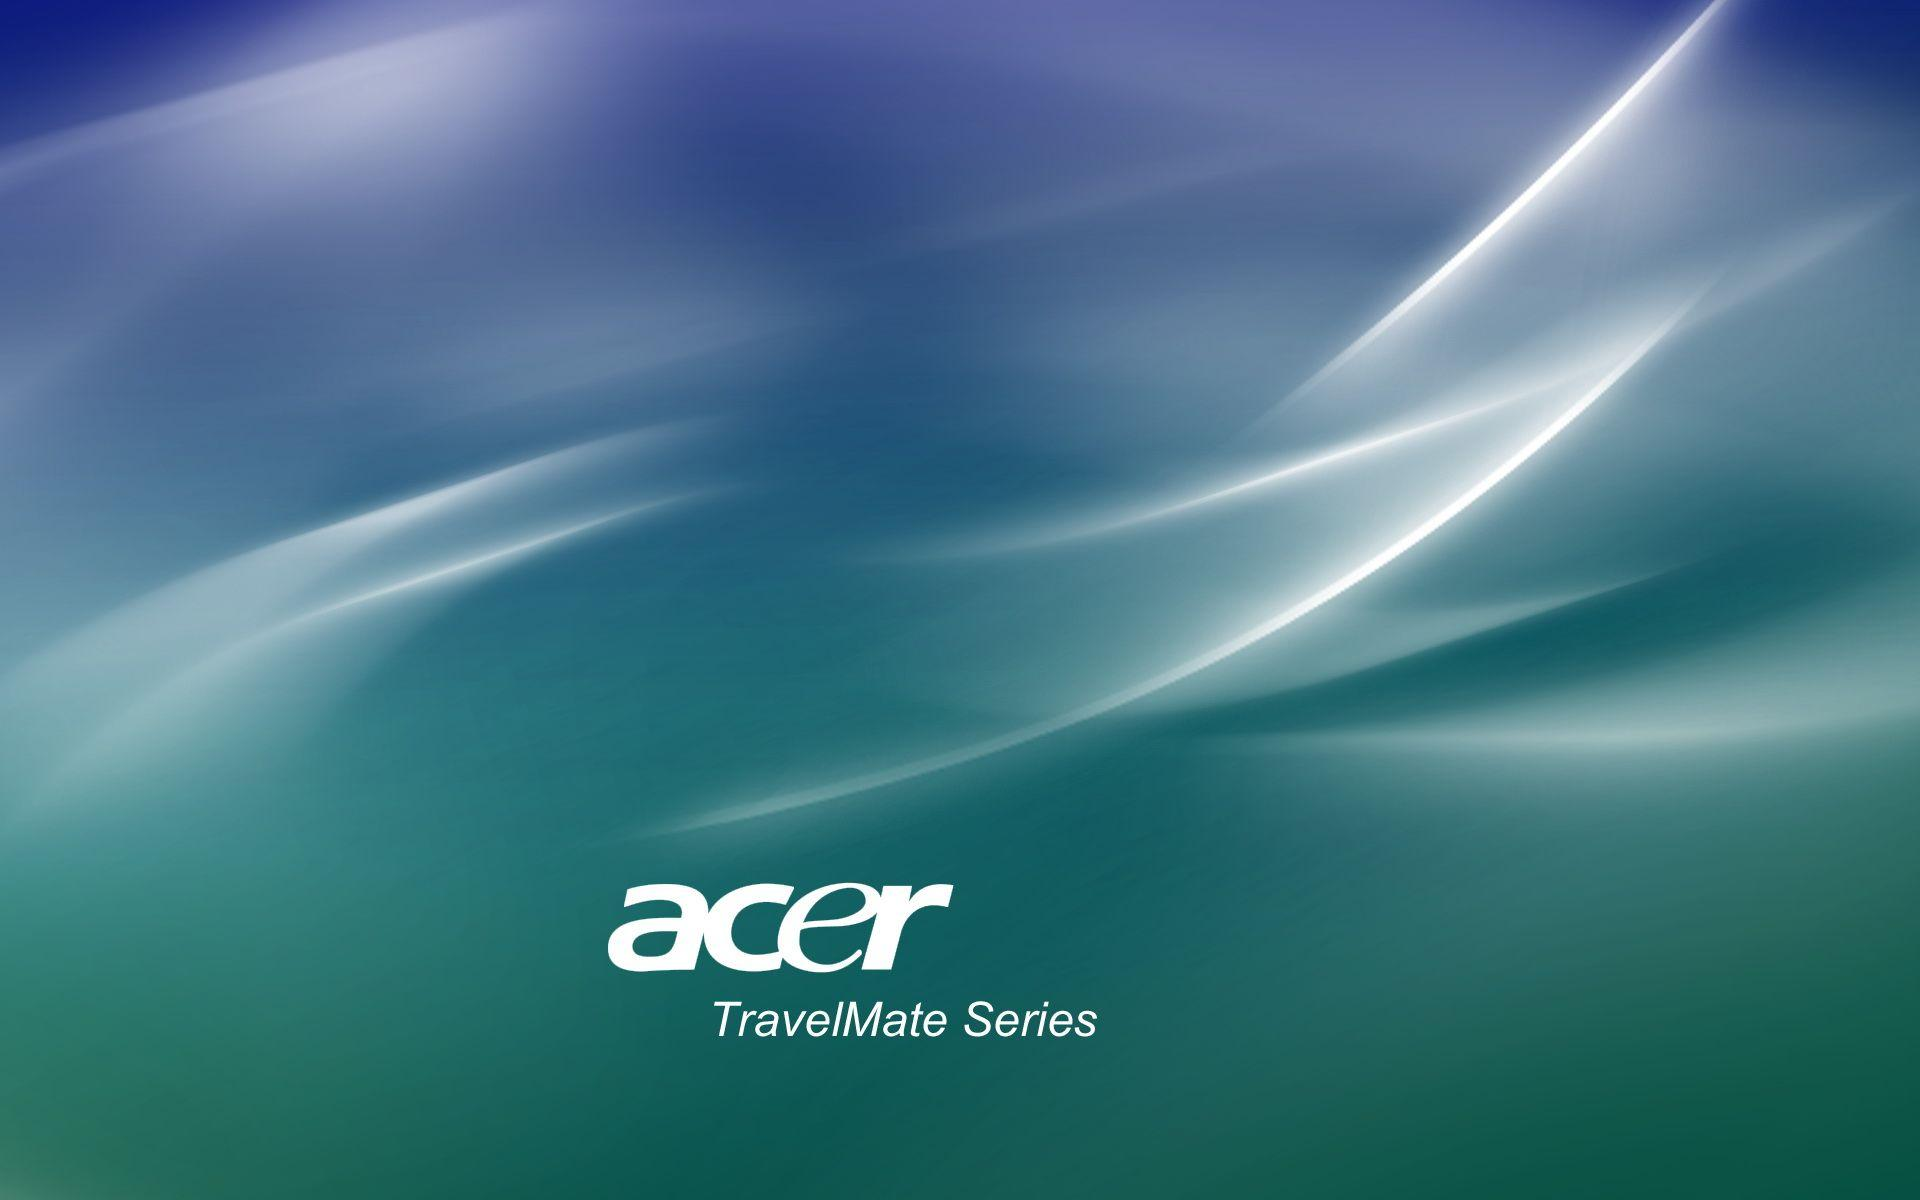 Top 1366x768 Acer Wallpaper Windows Wallpapers